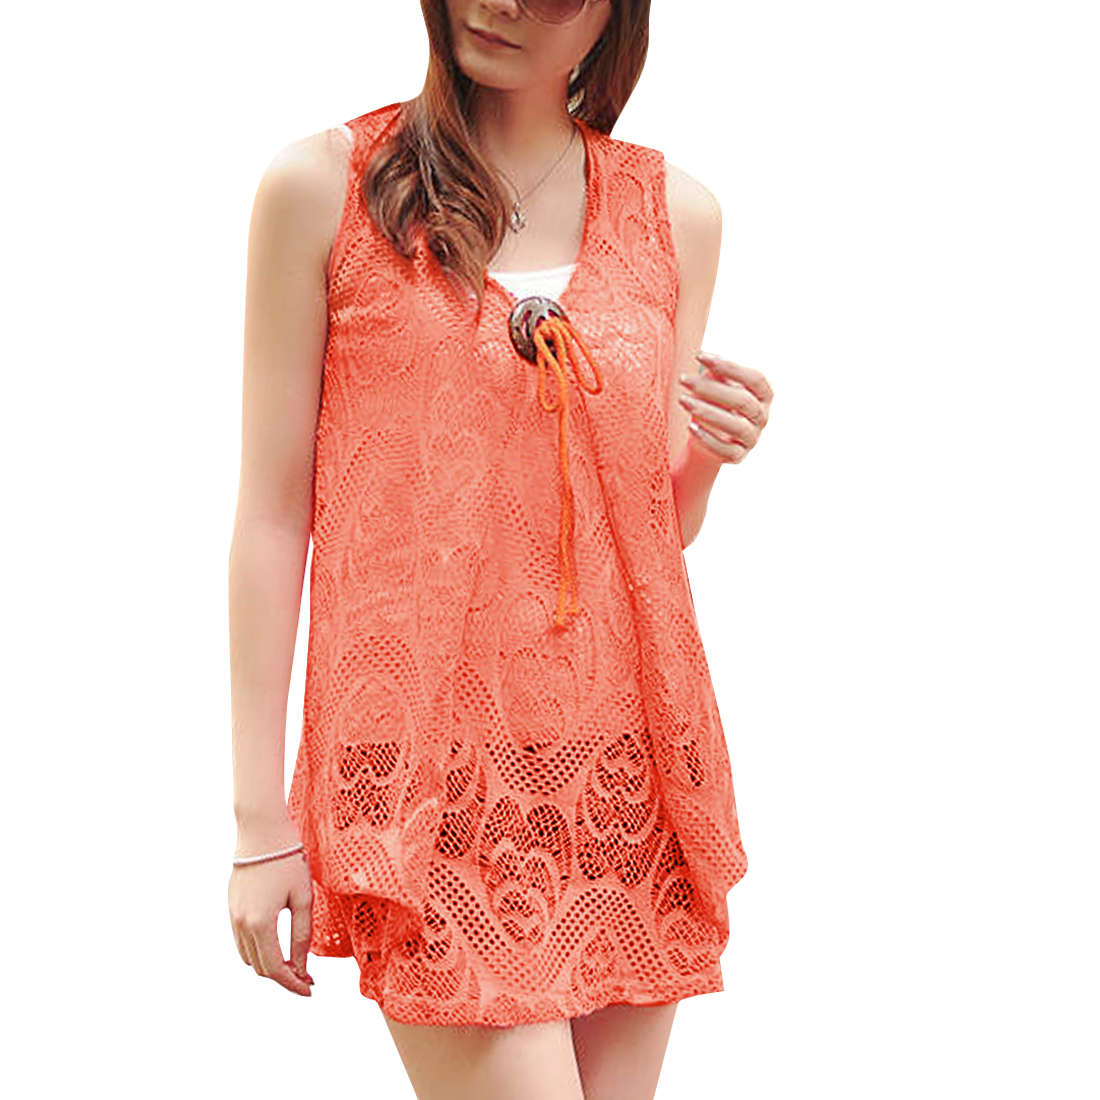 Women Pullover Lace Top Shirt & Stretchy Tank Top Coral XS